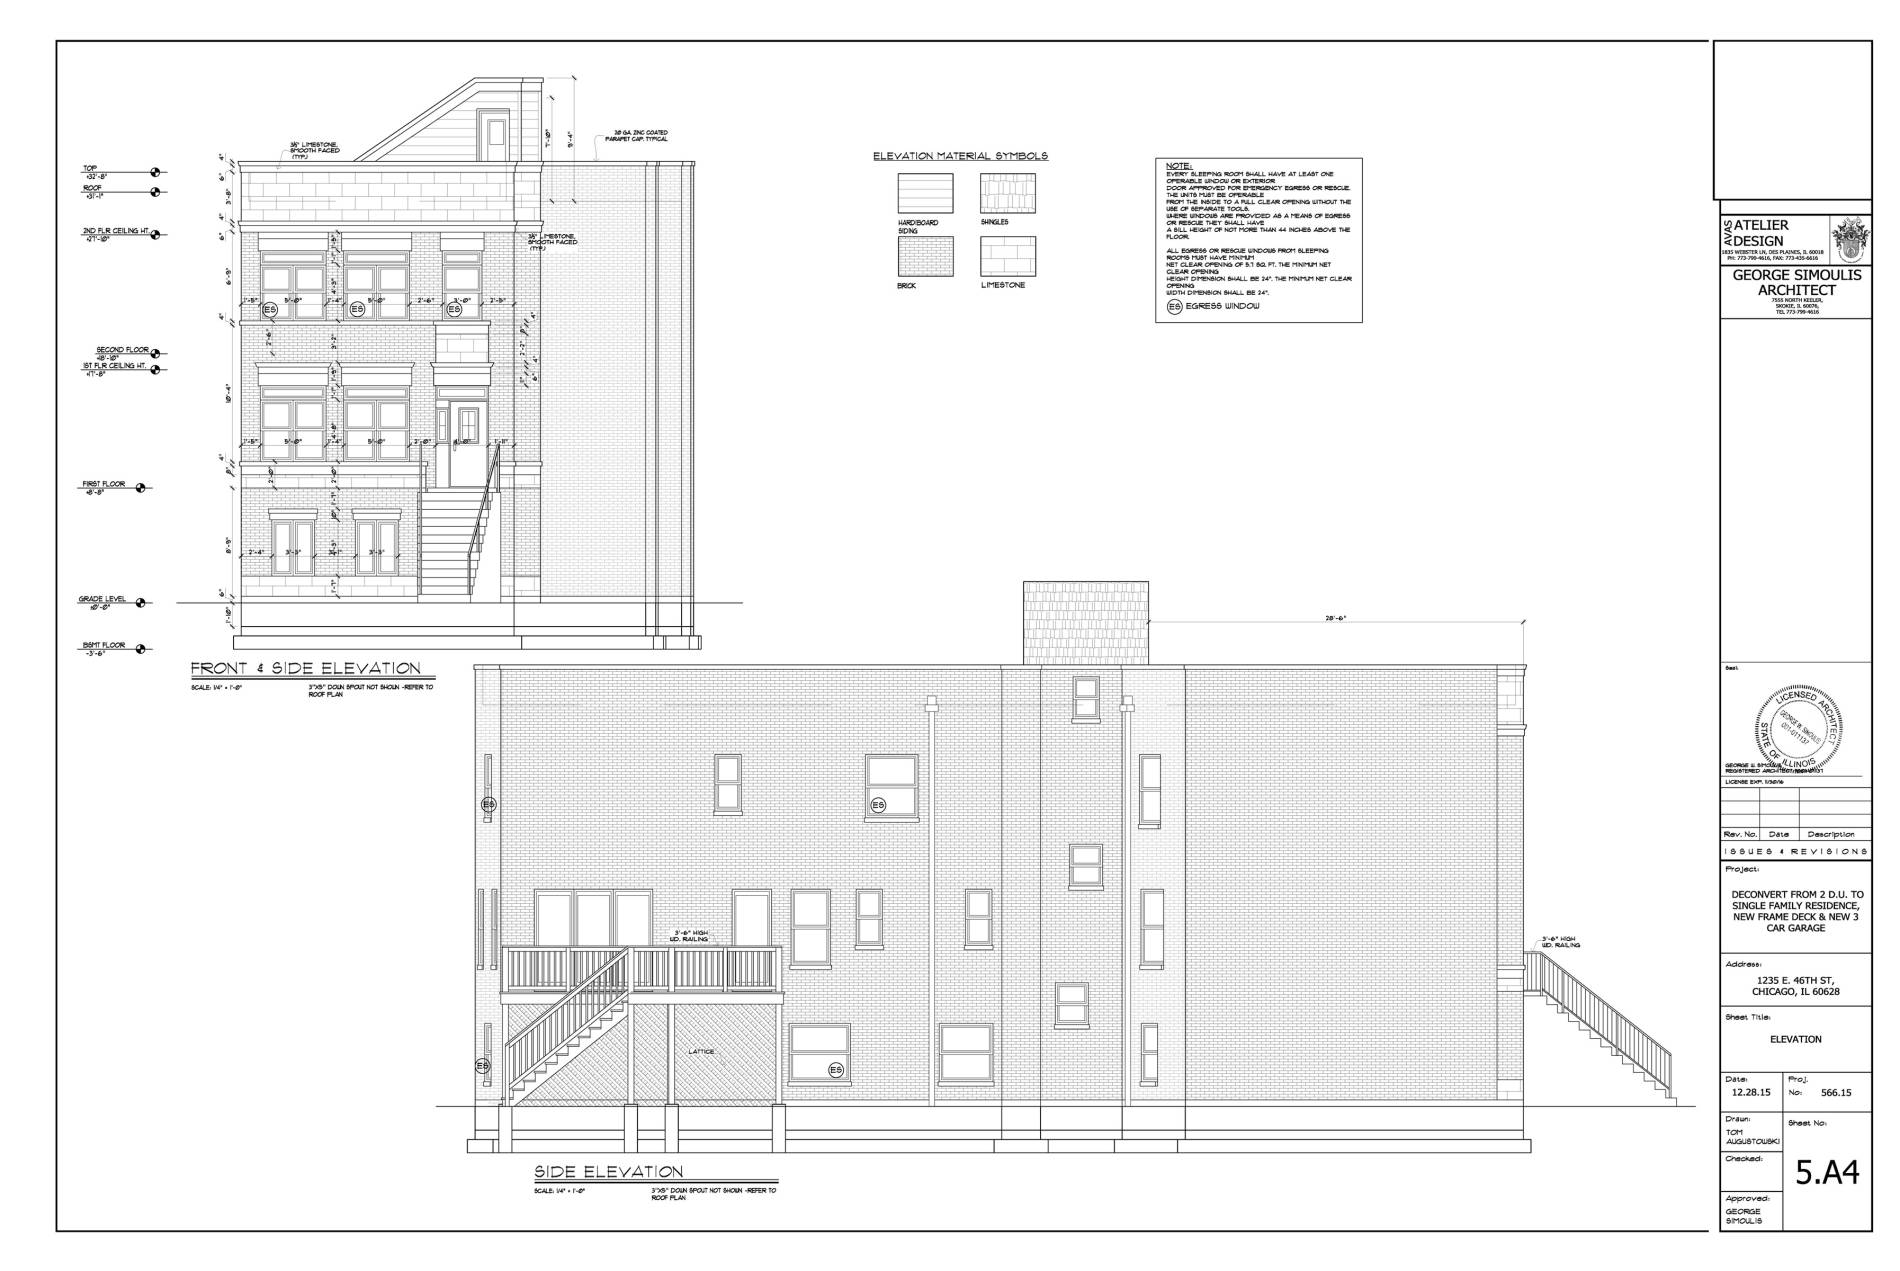 1235 E. 46th_project_proposed-plans_Page_5